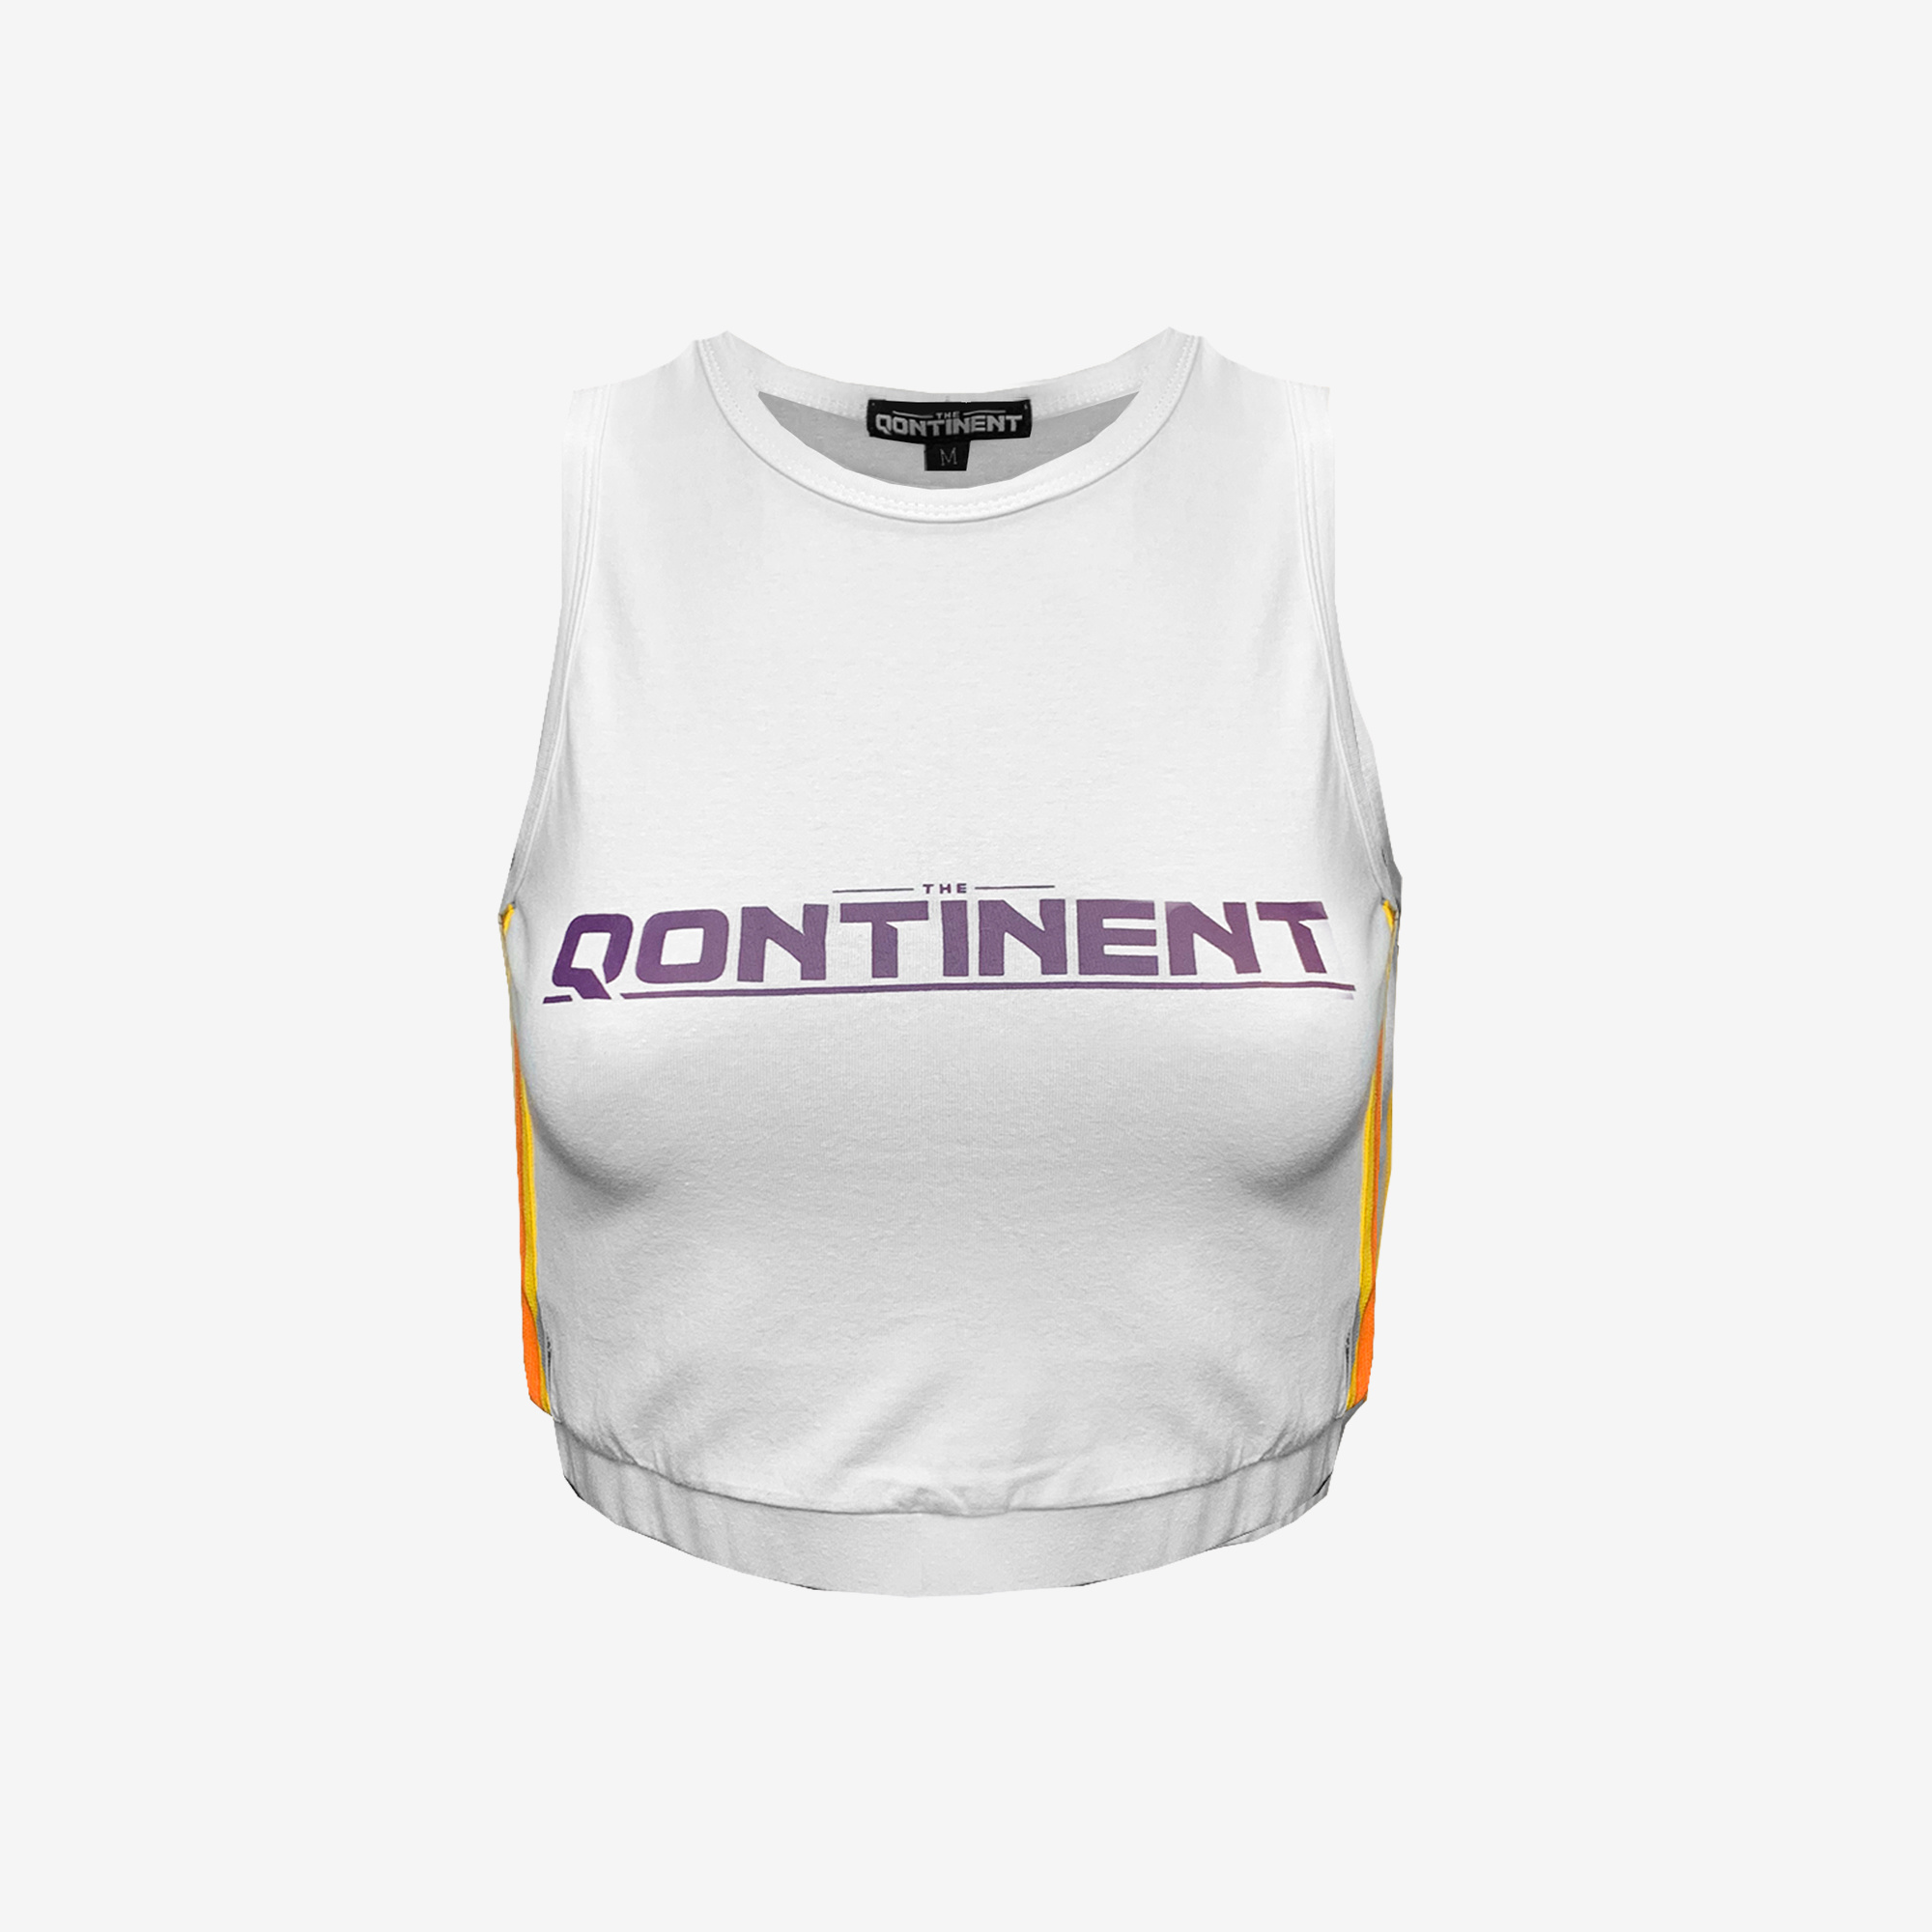 The Qontinent - 2019 White Crop Top